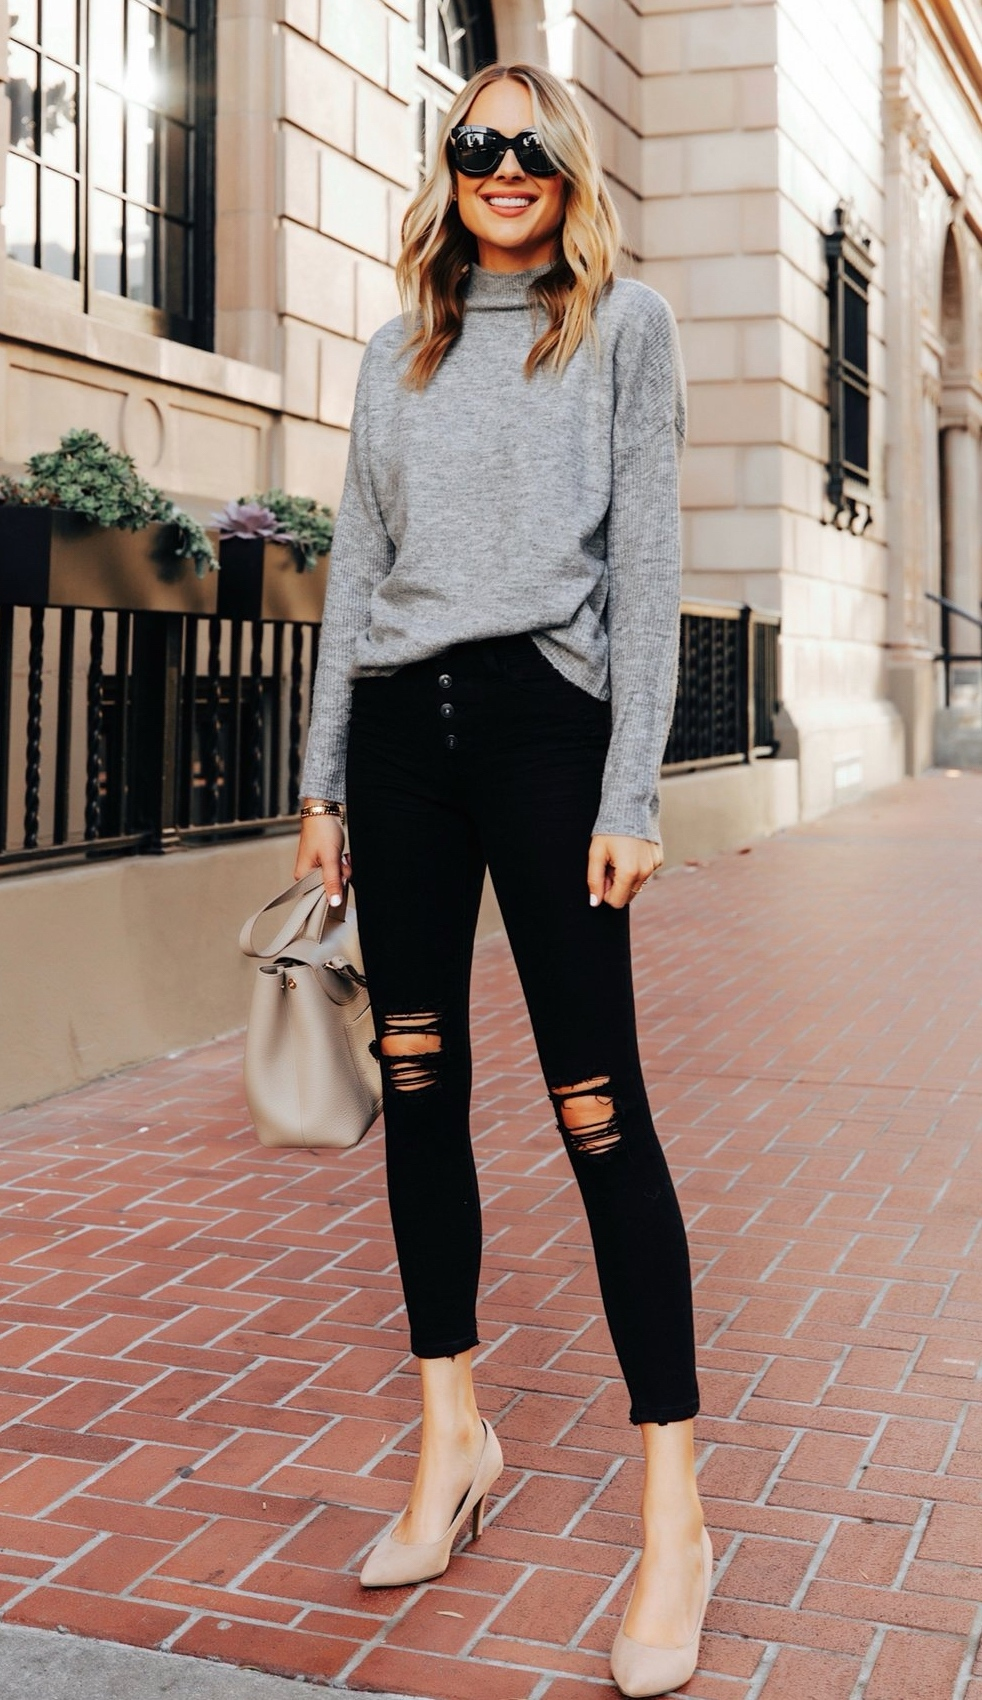 Black ripped jeans outfit with grey sweater